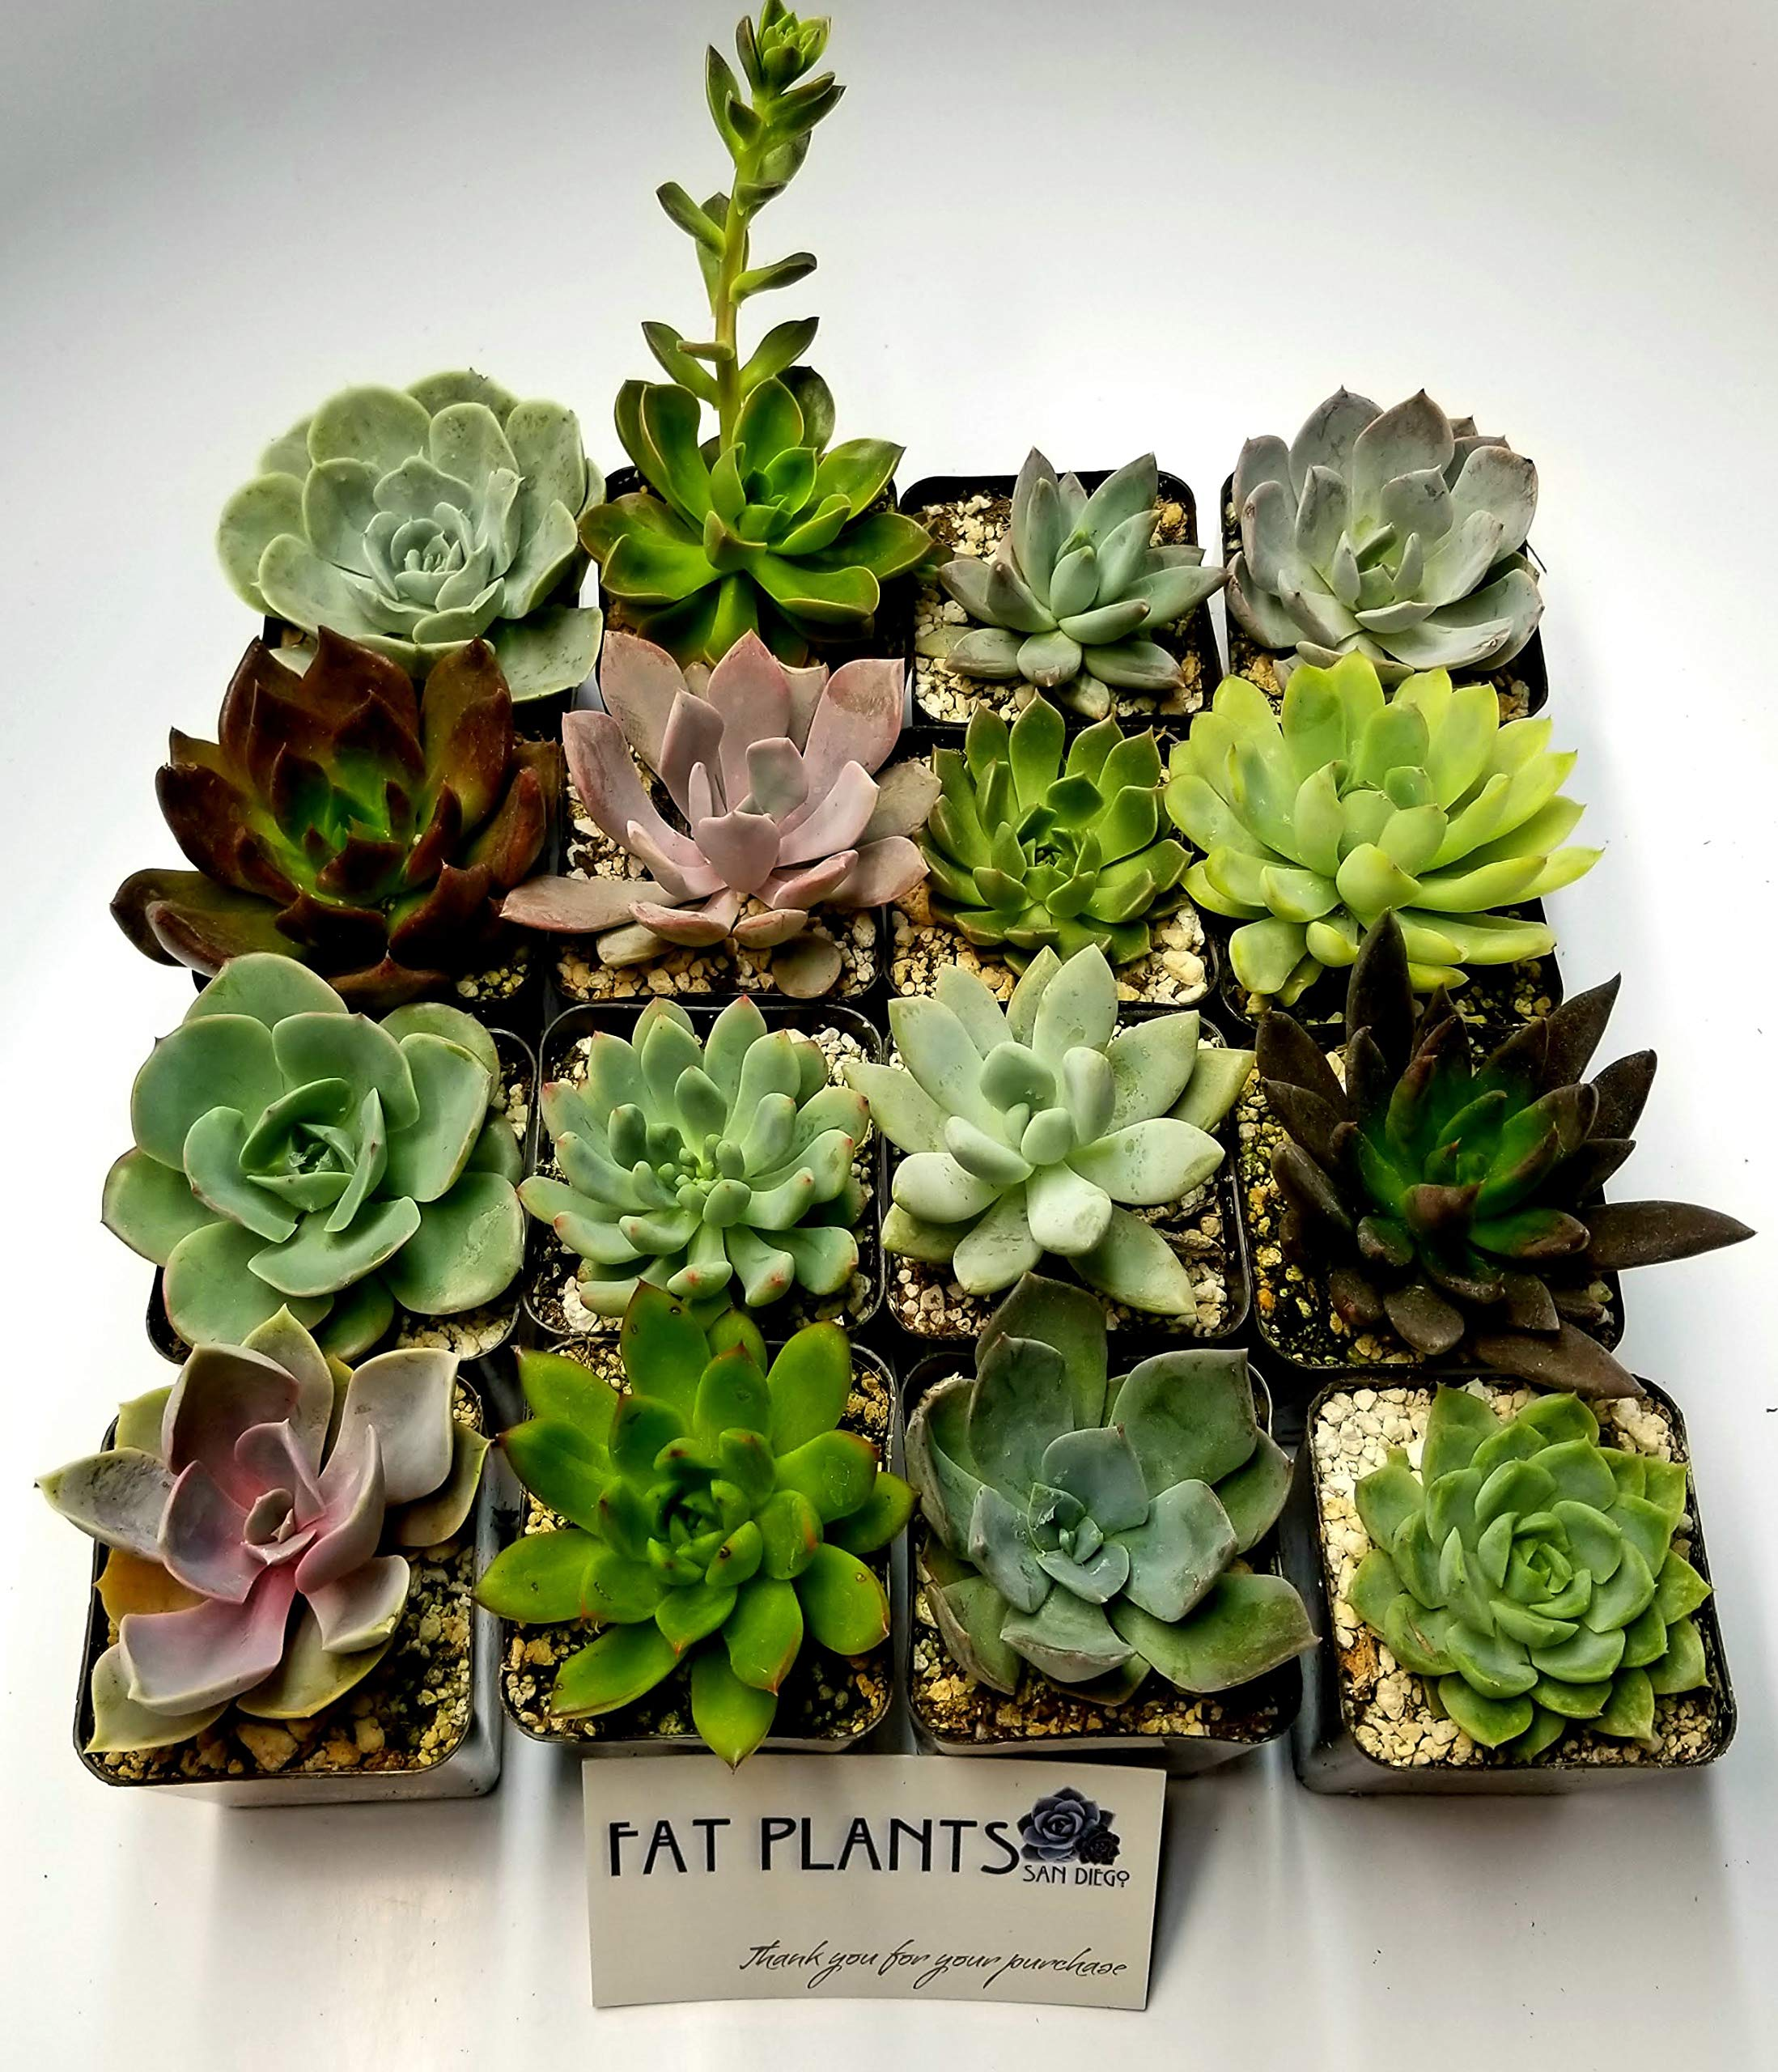 Fat Plants San Diego 2.5 Inch Wedding Rosette Succulent Plants (12) by Fat Plants San Diego (Image #3)